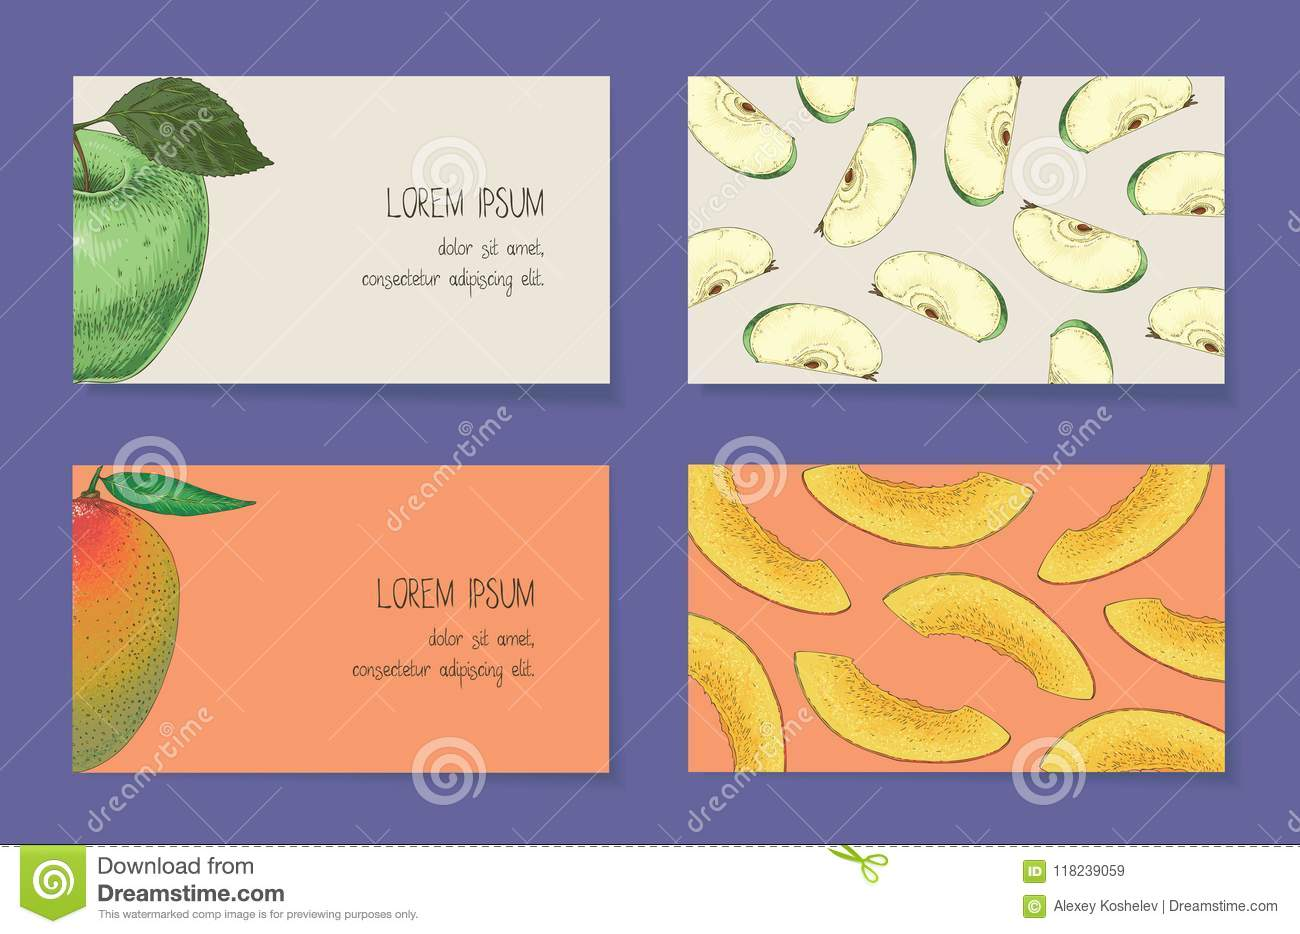 Fruit business cards template collection stock vector illustration fruit business cards template collection accmission Choice Image